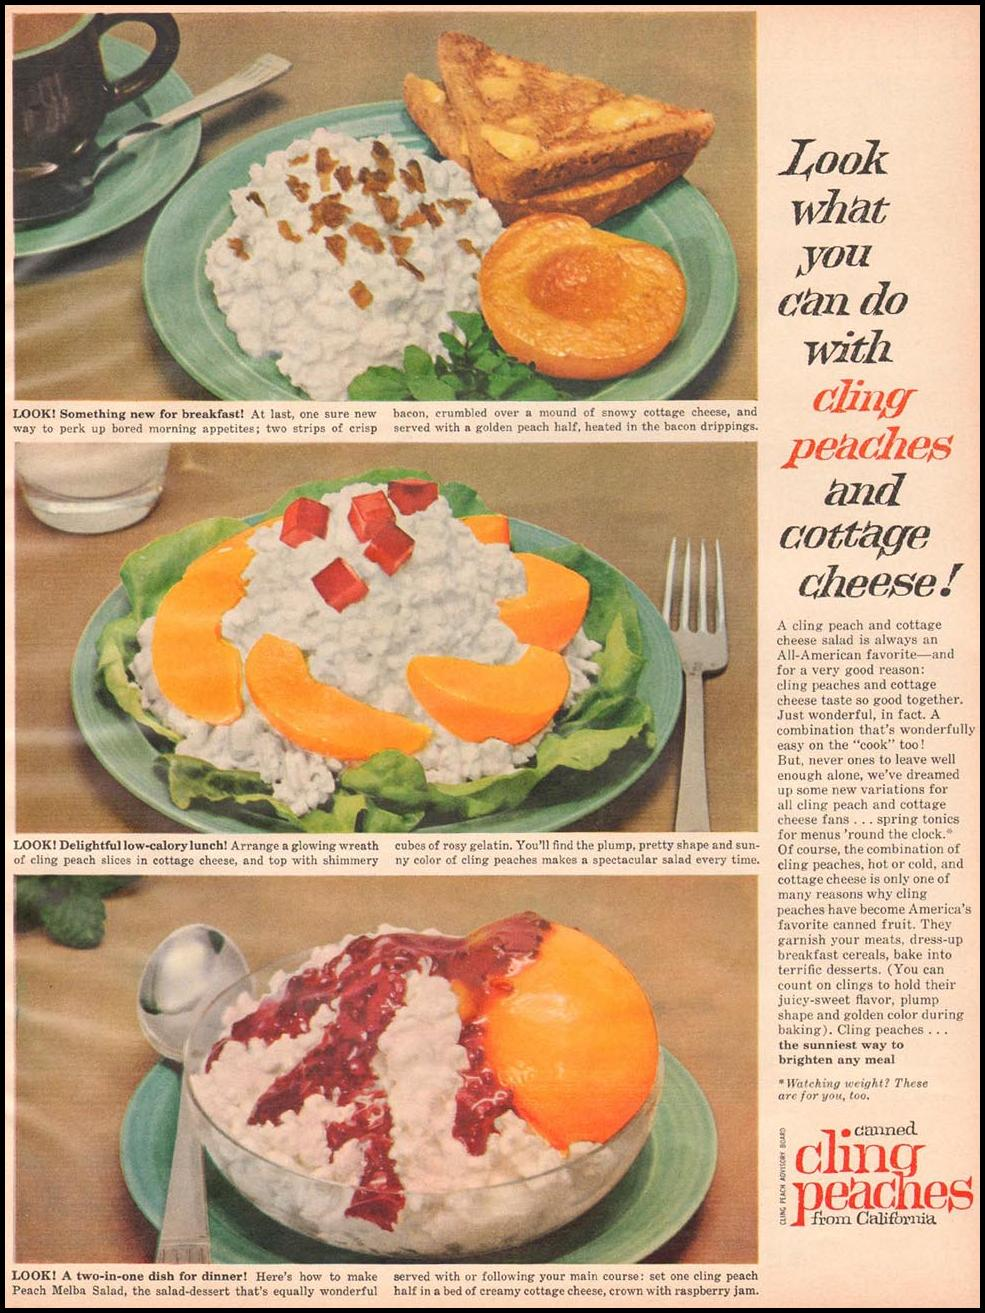 CALIFORNIA CLING PEACHES BETTER HOMES AND GARDENS 03/01/1960 p. 121